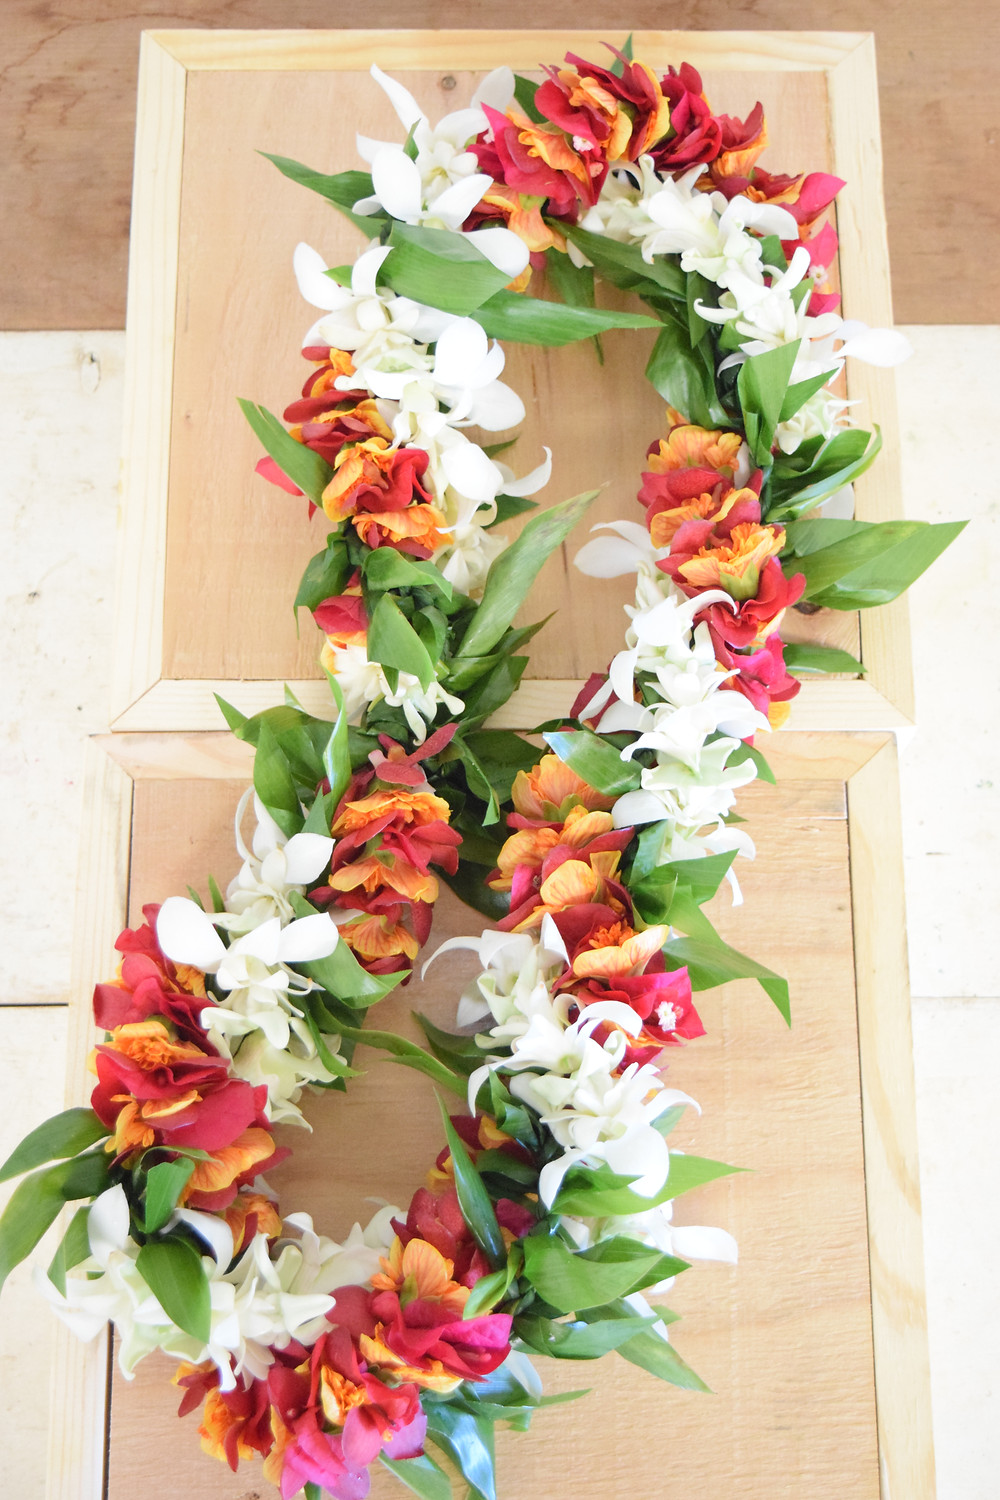 White crown flower, orchid and tuberose mix, maile-style ti leaf, and ilima-bougainvillea twist.